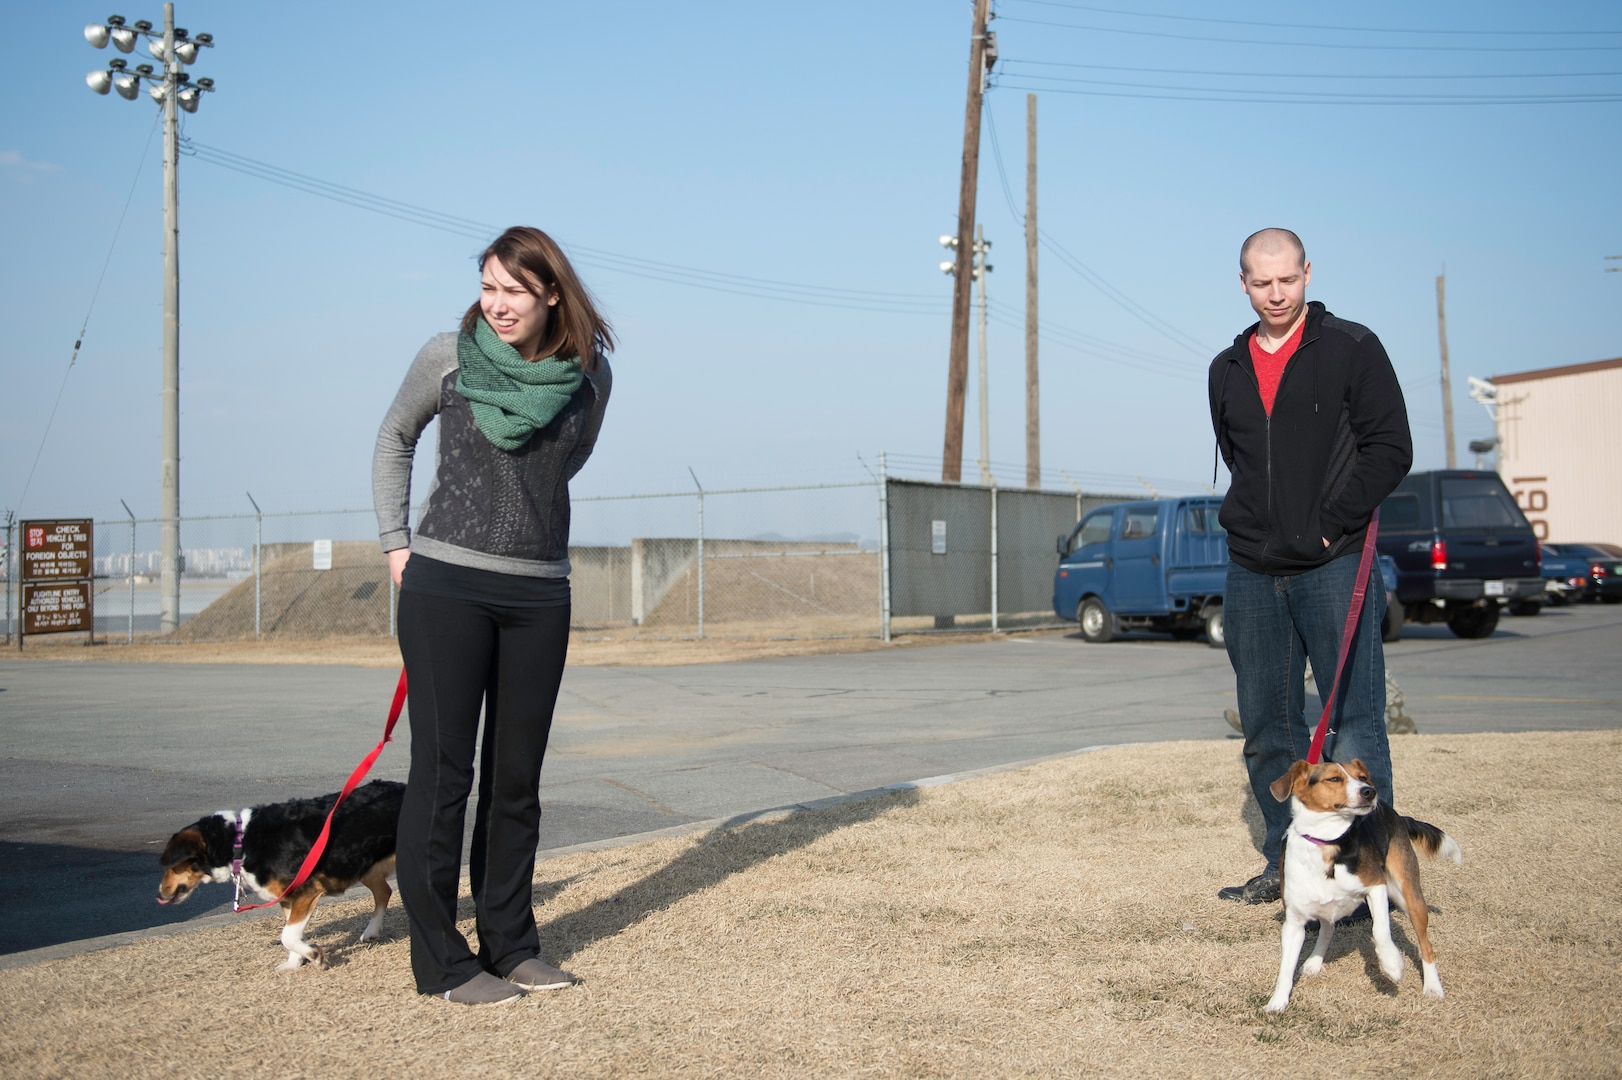 Army Sgt. Stephen Adams and his wife Elena walk their dogs for the first time after in processing the Osan Air Base passenger terminal, Republic of Korea, March 2, 2015. Sergeant Adams arrived on the Peninsula that day to join the 2nd Battalion, 2nd Aviation Regiment, 2nd Infantry Division at Camp Humphreys, Republic of Korea, as a UH-60 Black Hawk helicopter crew chief. (U.S. Air Force photo by Staff Sgt. Shawn Nickel/Released)